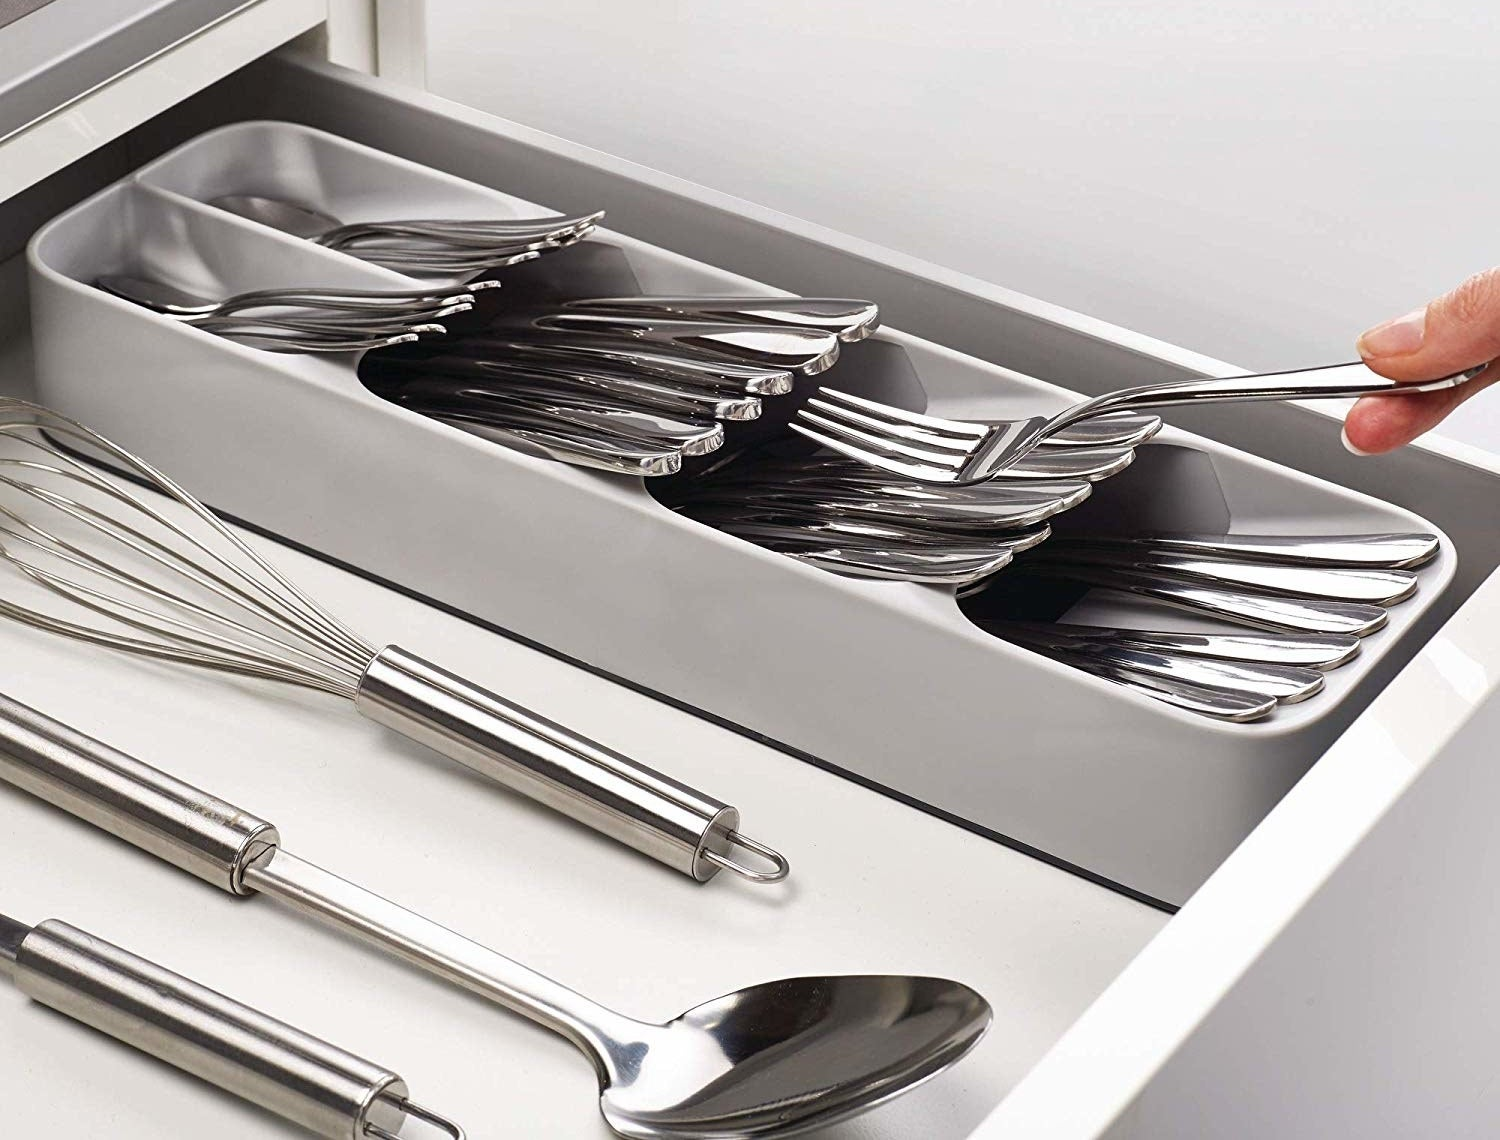 A cutlery organizer inside of a drawer with three big compartments and two smaller compartments at the top filled with silverware